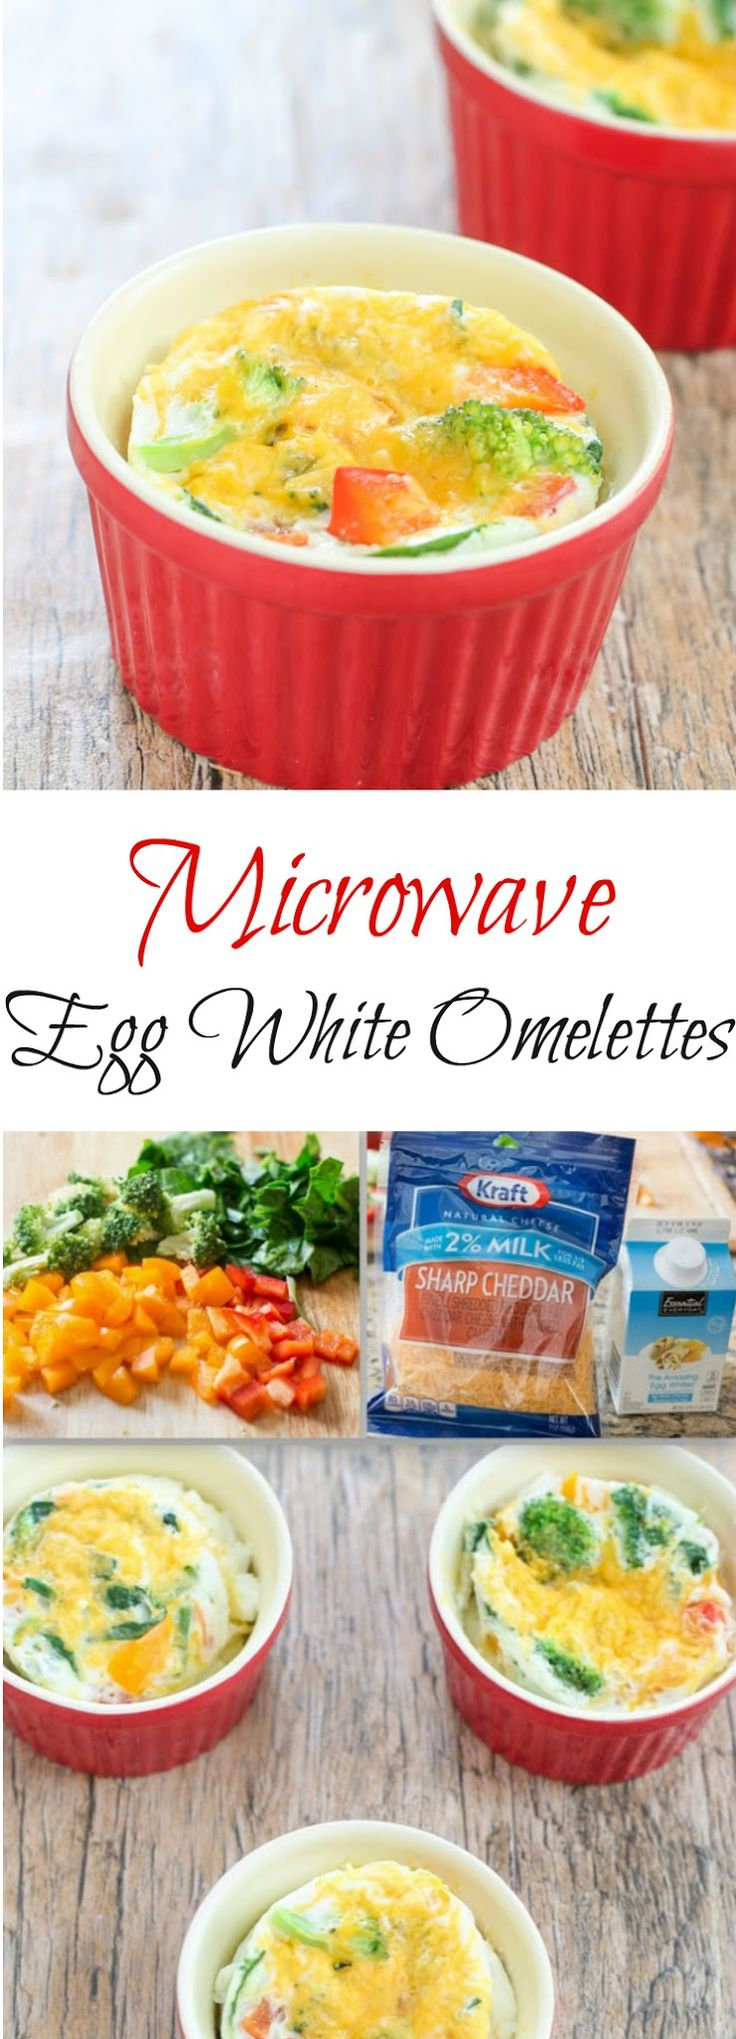 Microwave Egg White Omelets. An easy breakfast